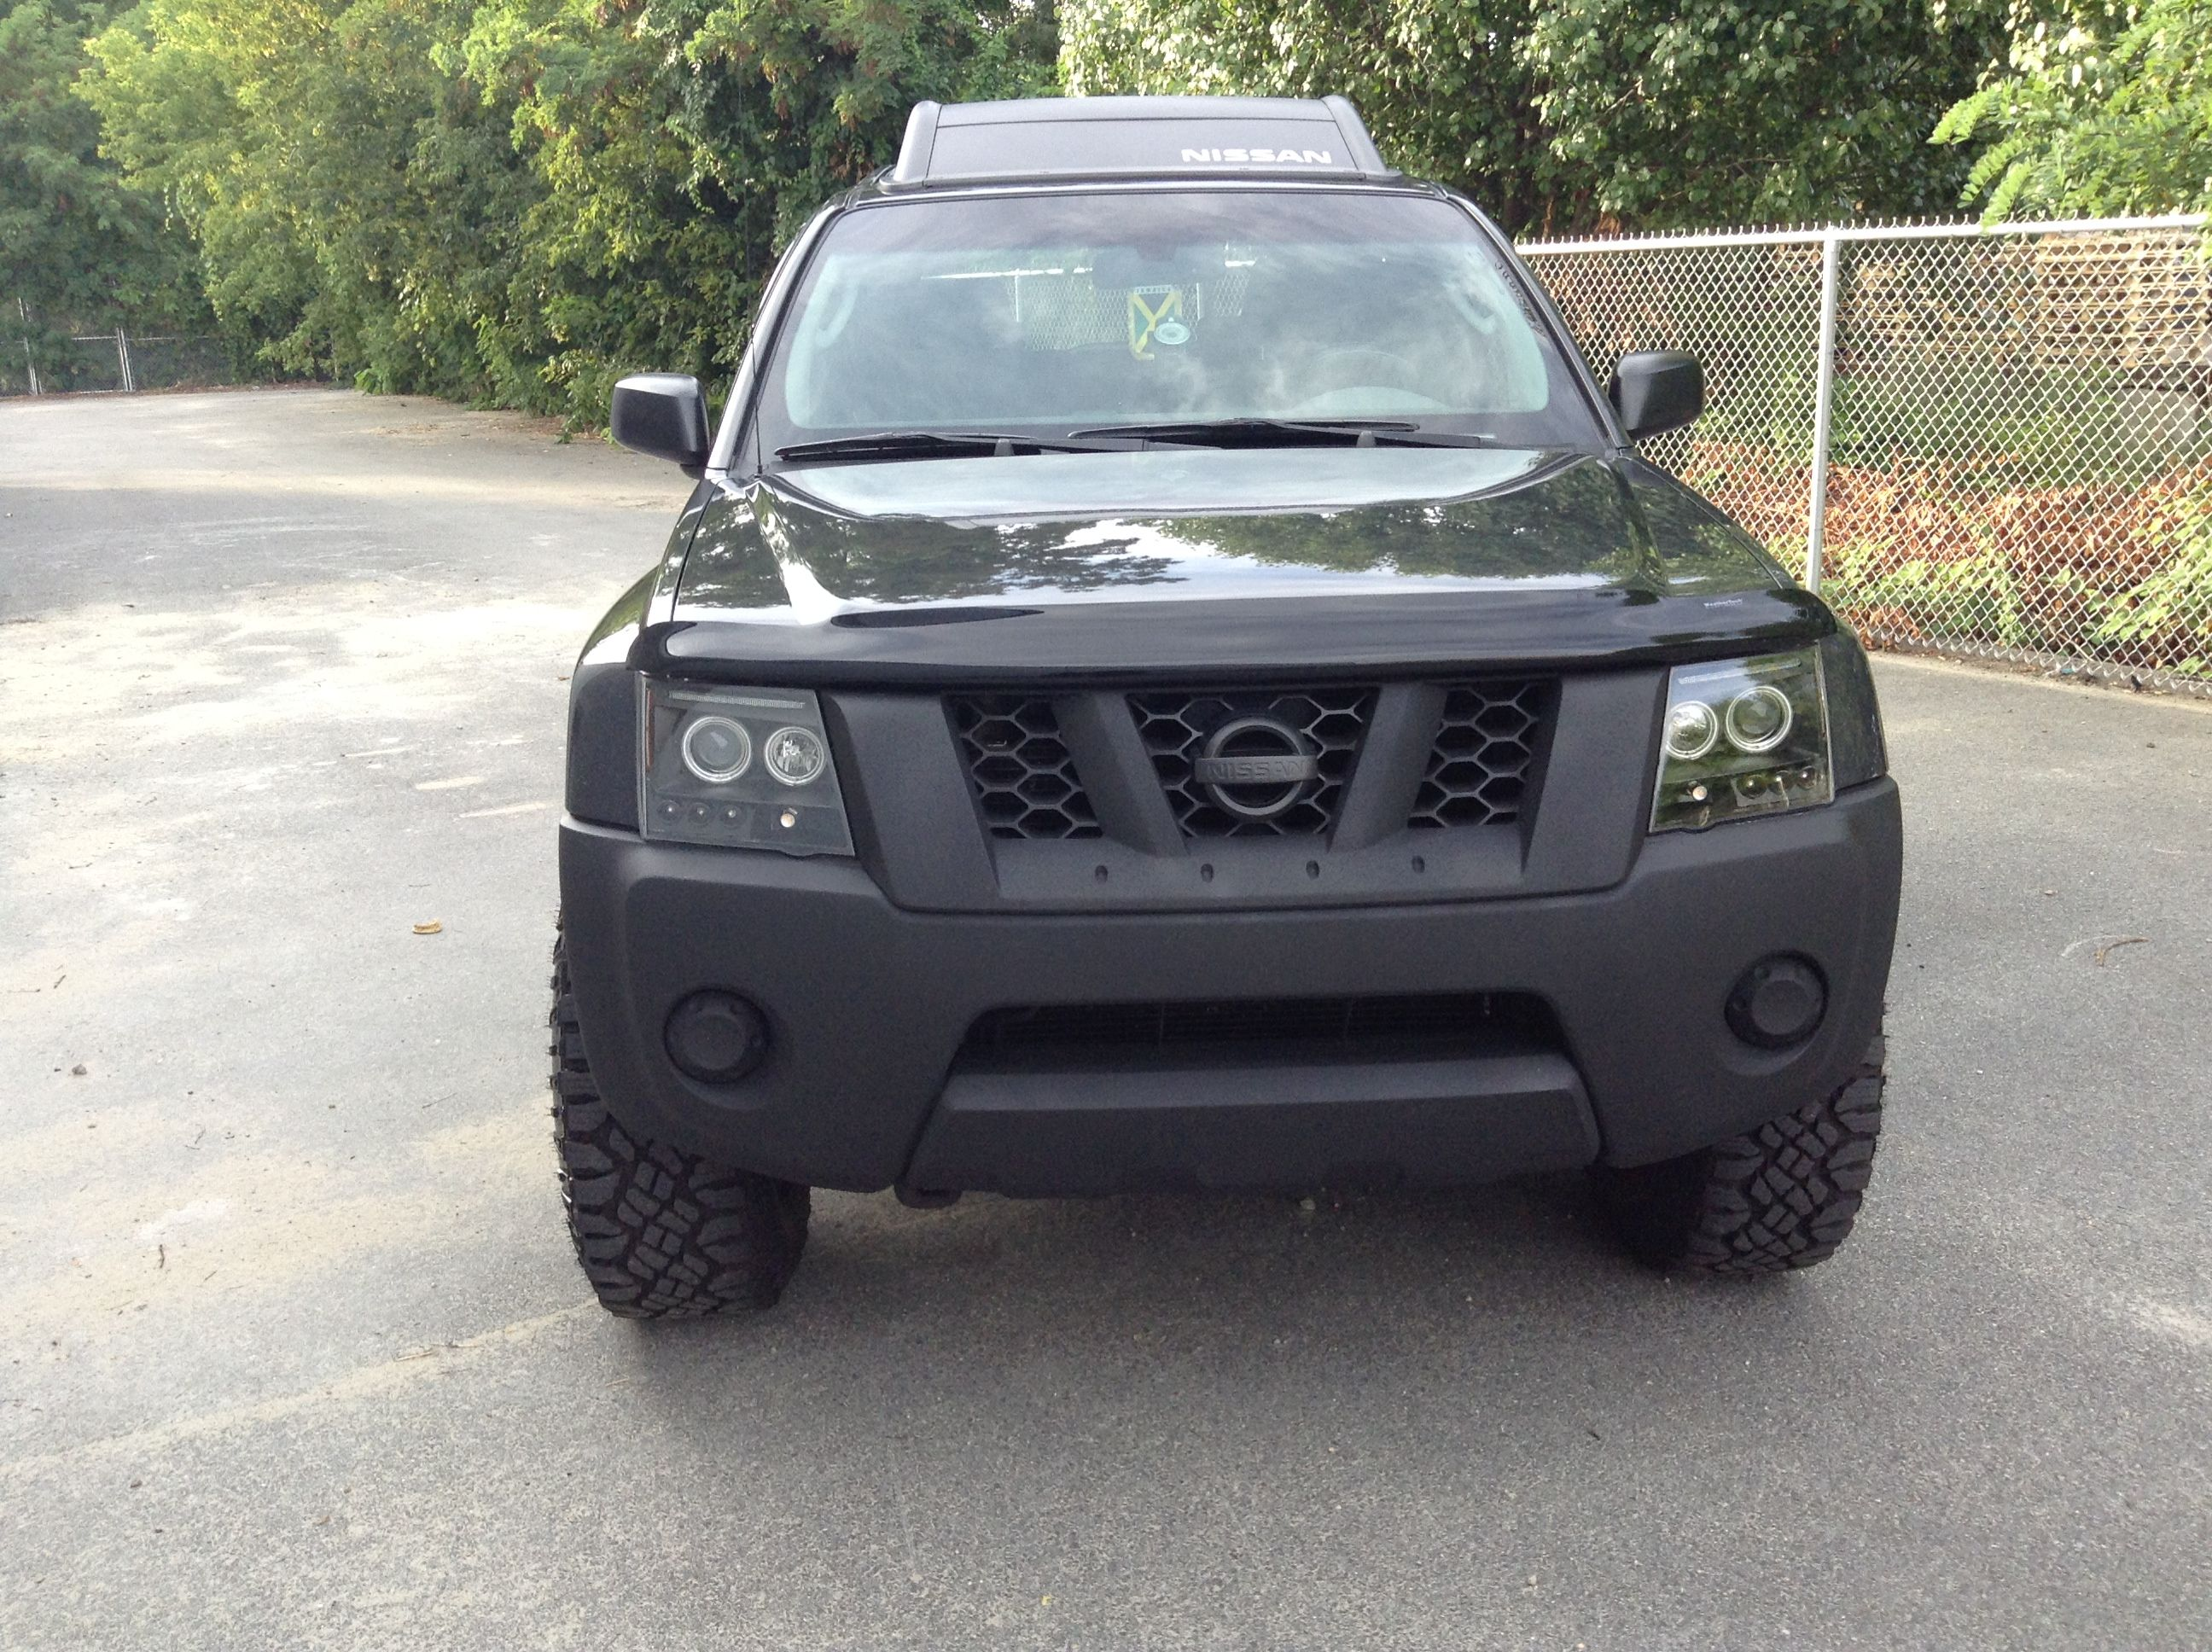 How to official stealth rims thread second generation nissan xterra forums pimp my ride pinterest nissan xterra nissan and cars